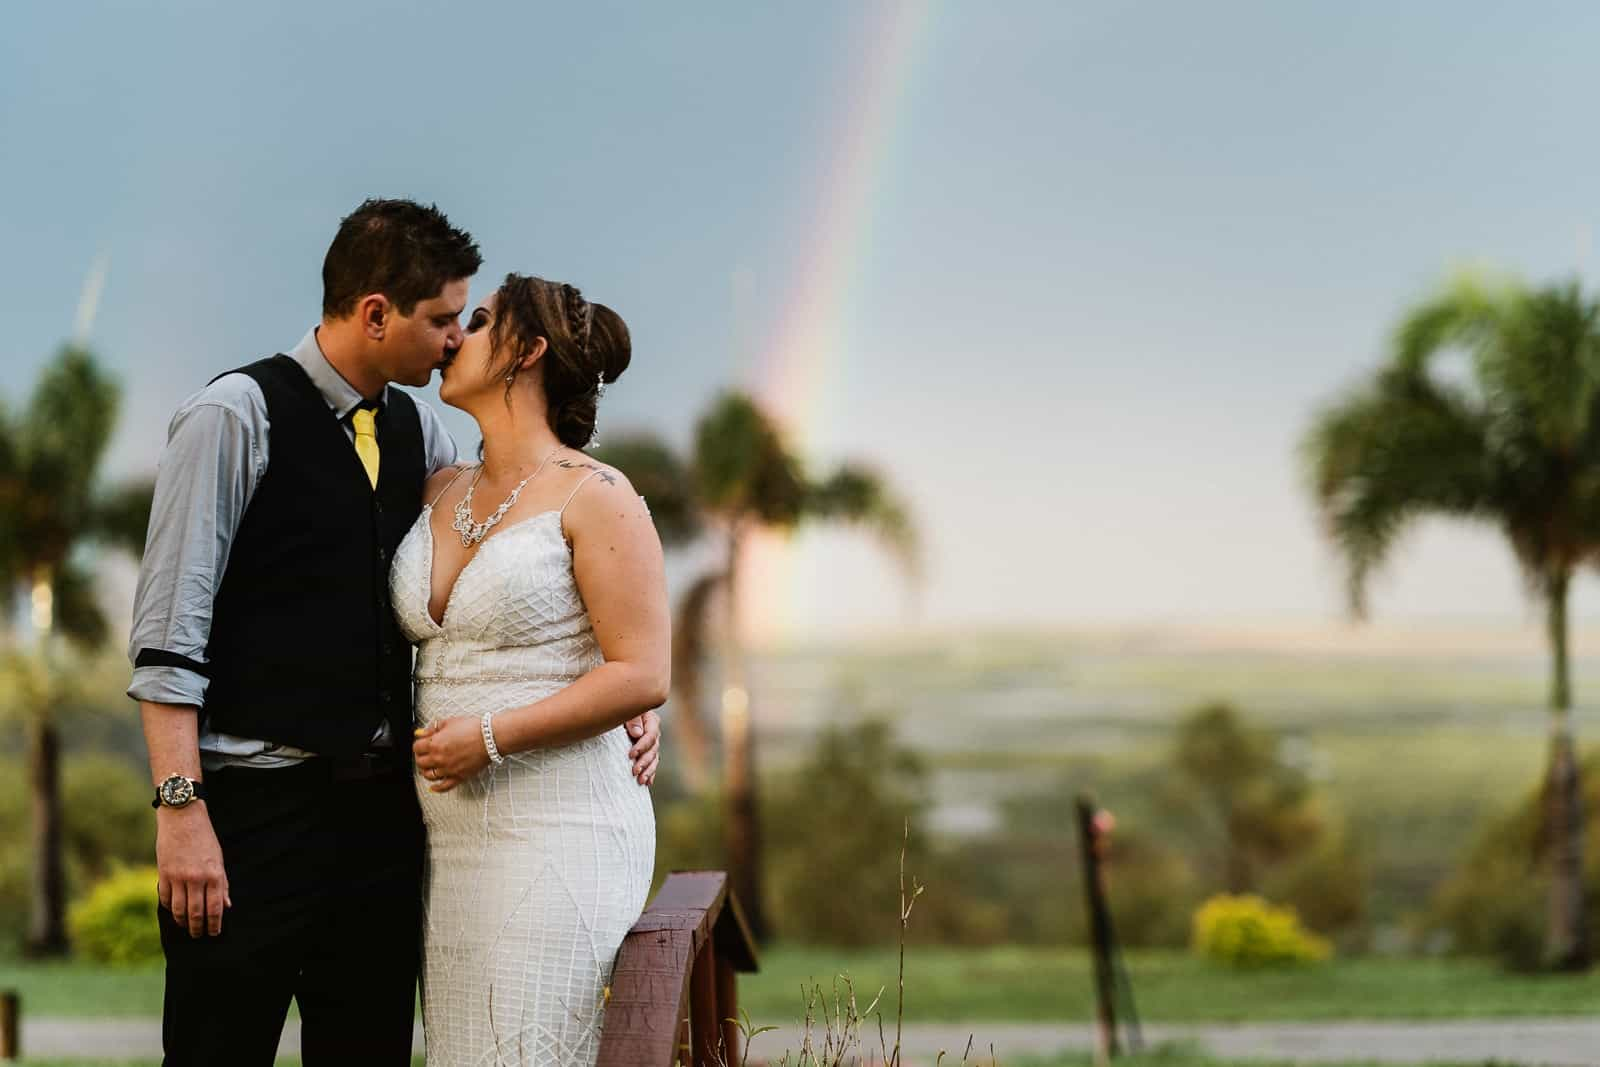 Wedding couple kiss with a rainbow in the background